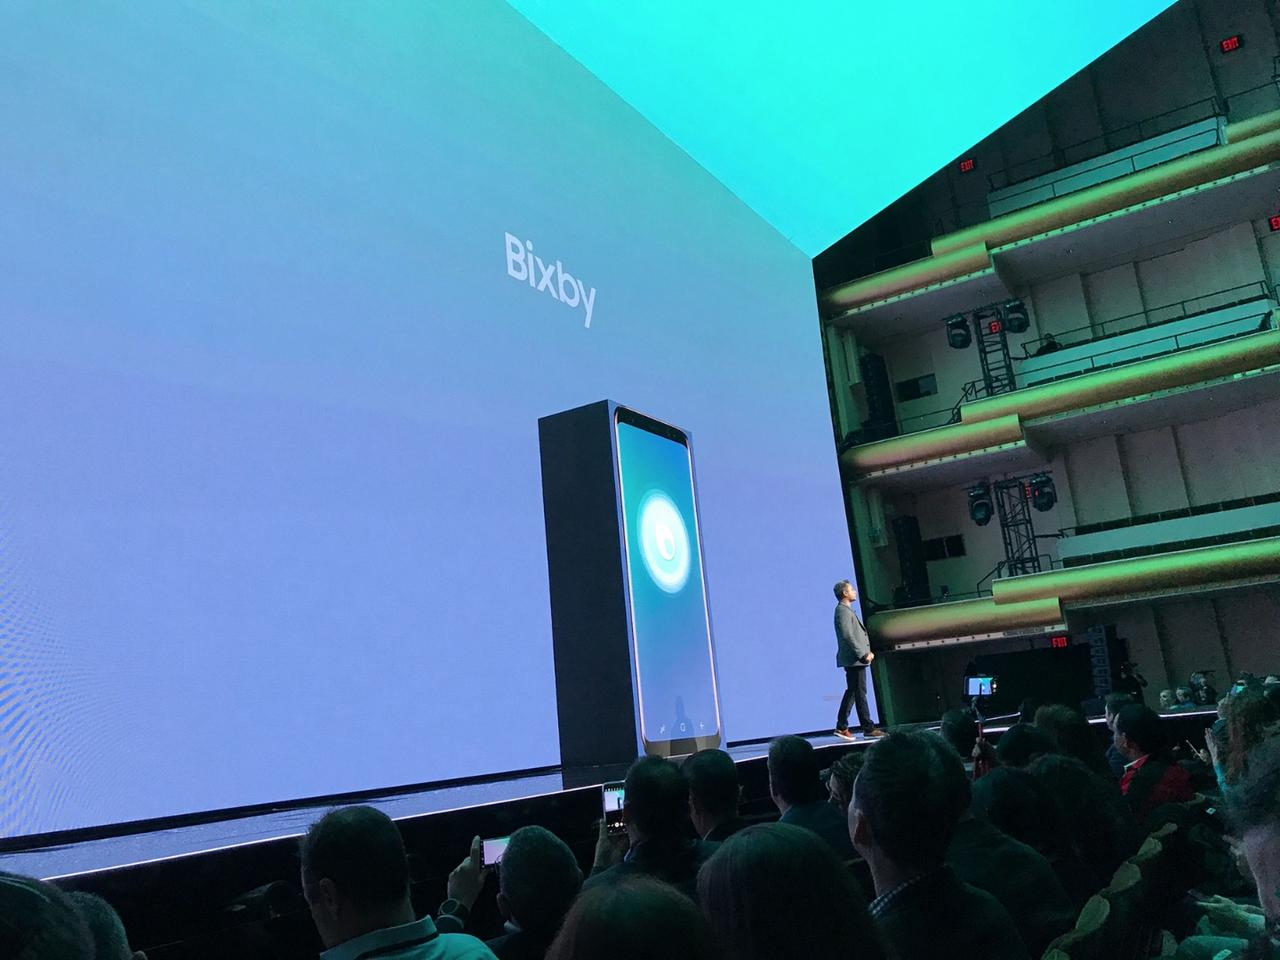 Samsung launches Bixby, a virtual assistant it hopes to roll out to all of its smart appliances